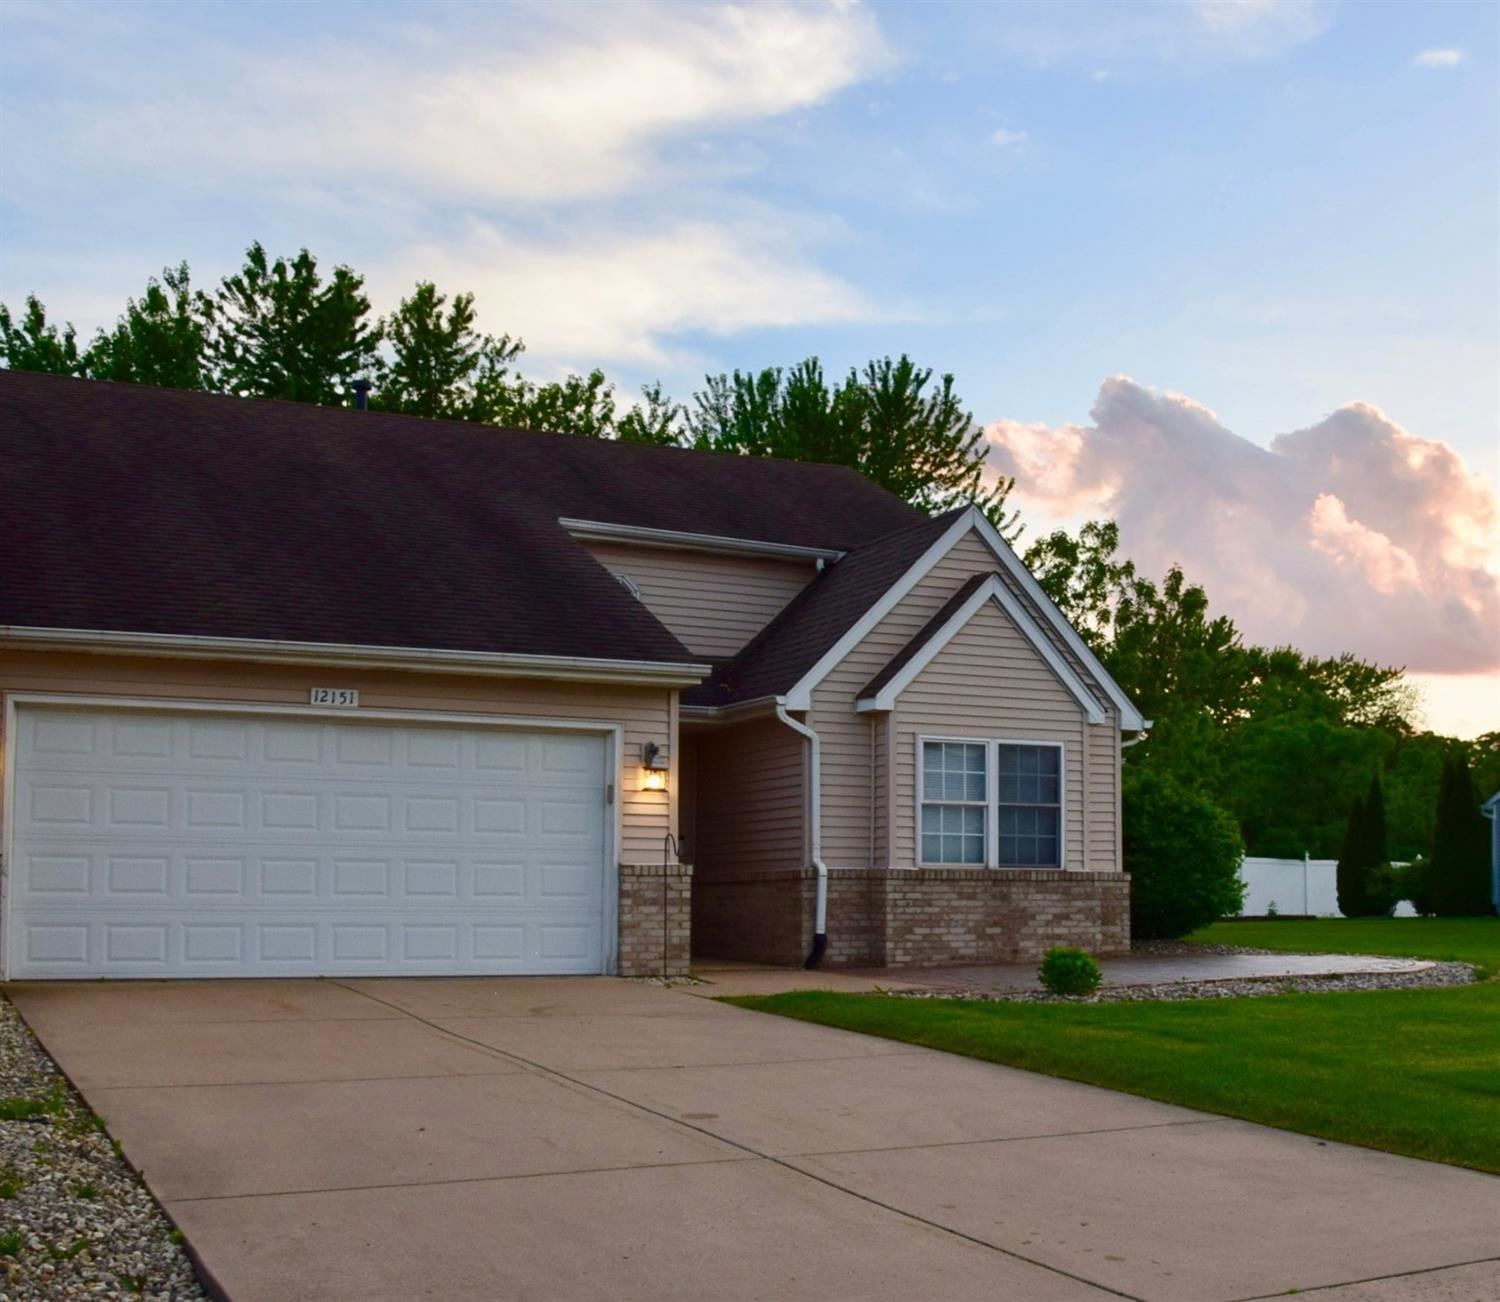 12151 W 83rd Place, Saint John, IN 46373 - #: 475722